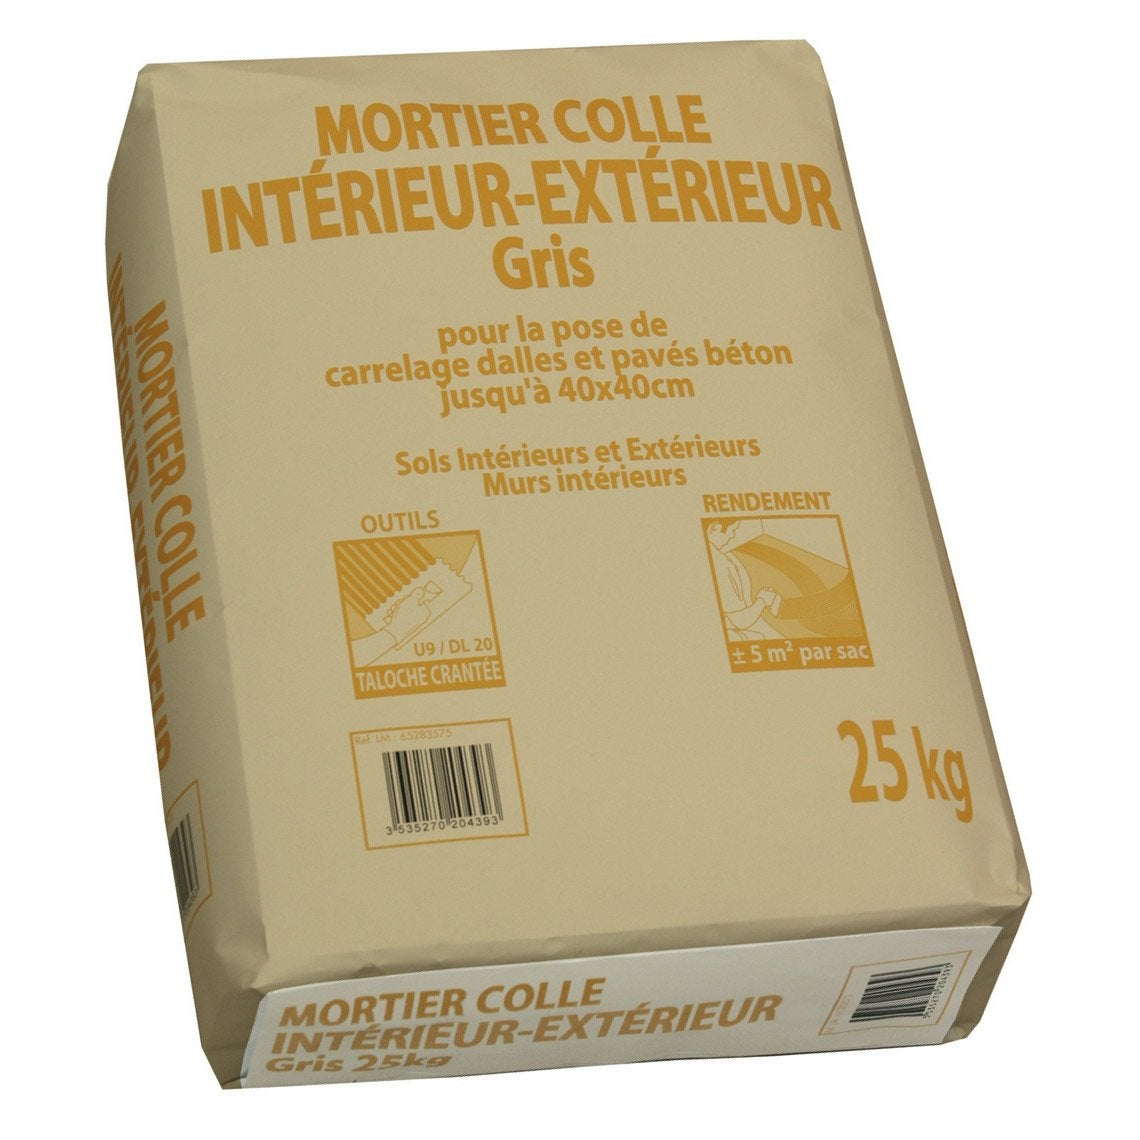 Colle pour carrelage int rieur ext rieur gris prb 25kg for Colle carrelage exterieur leroy merlin